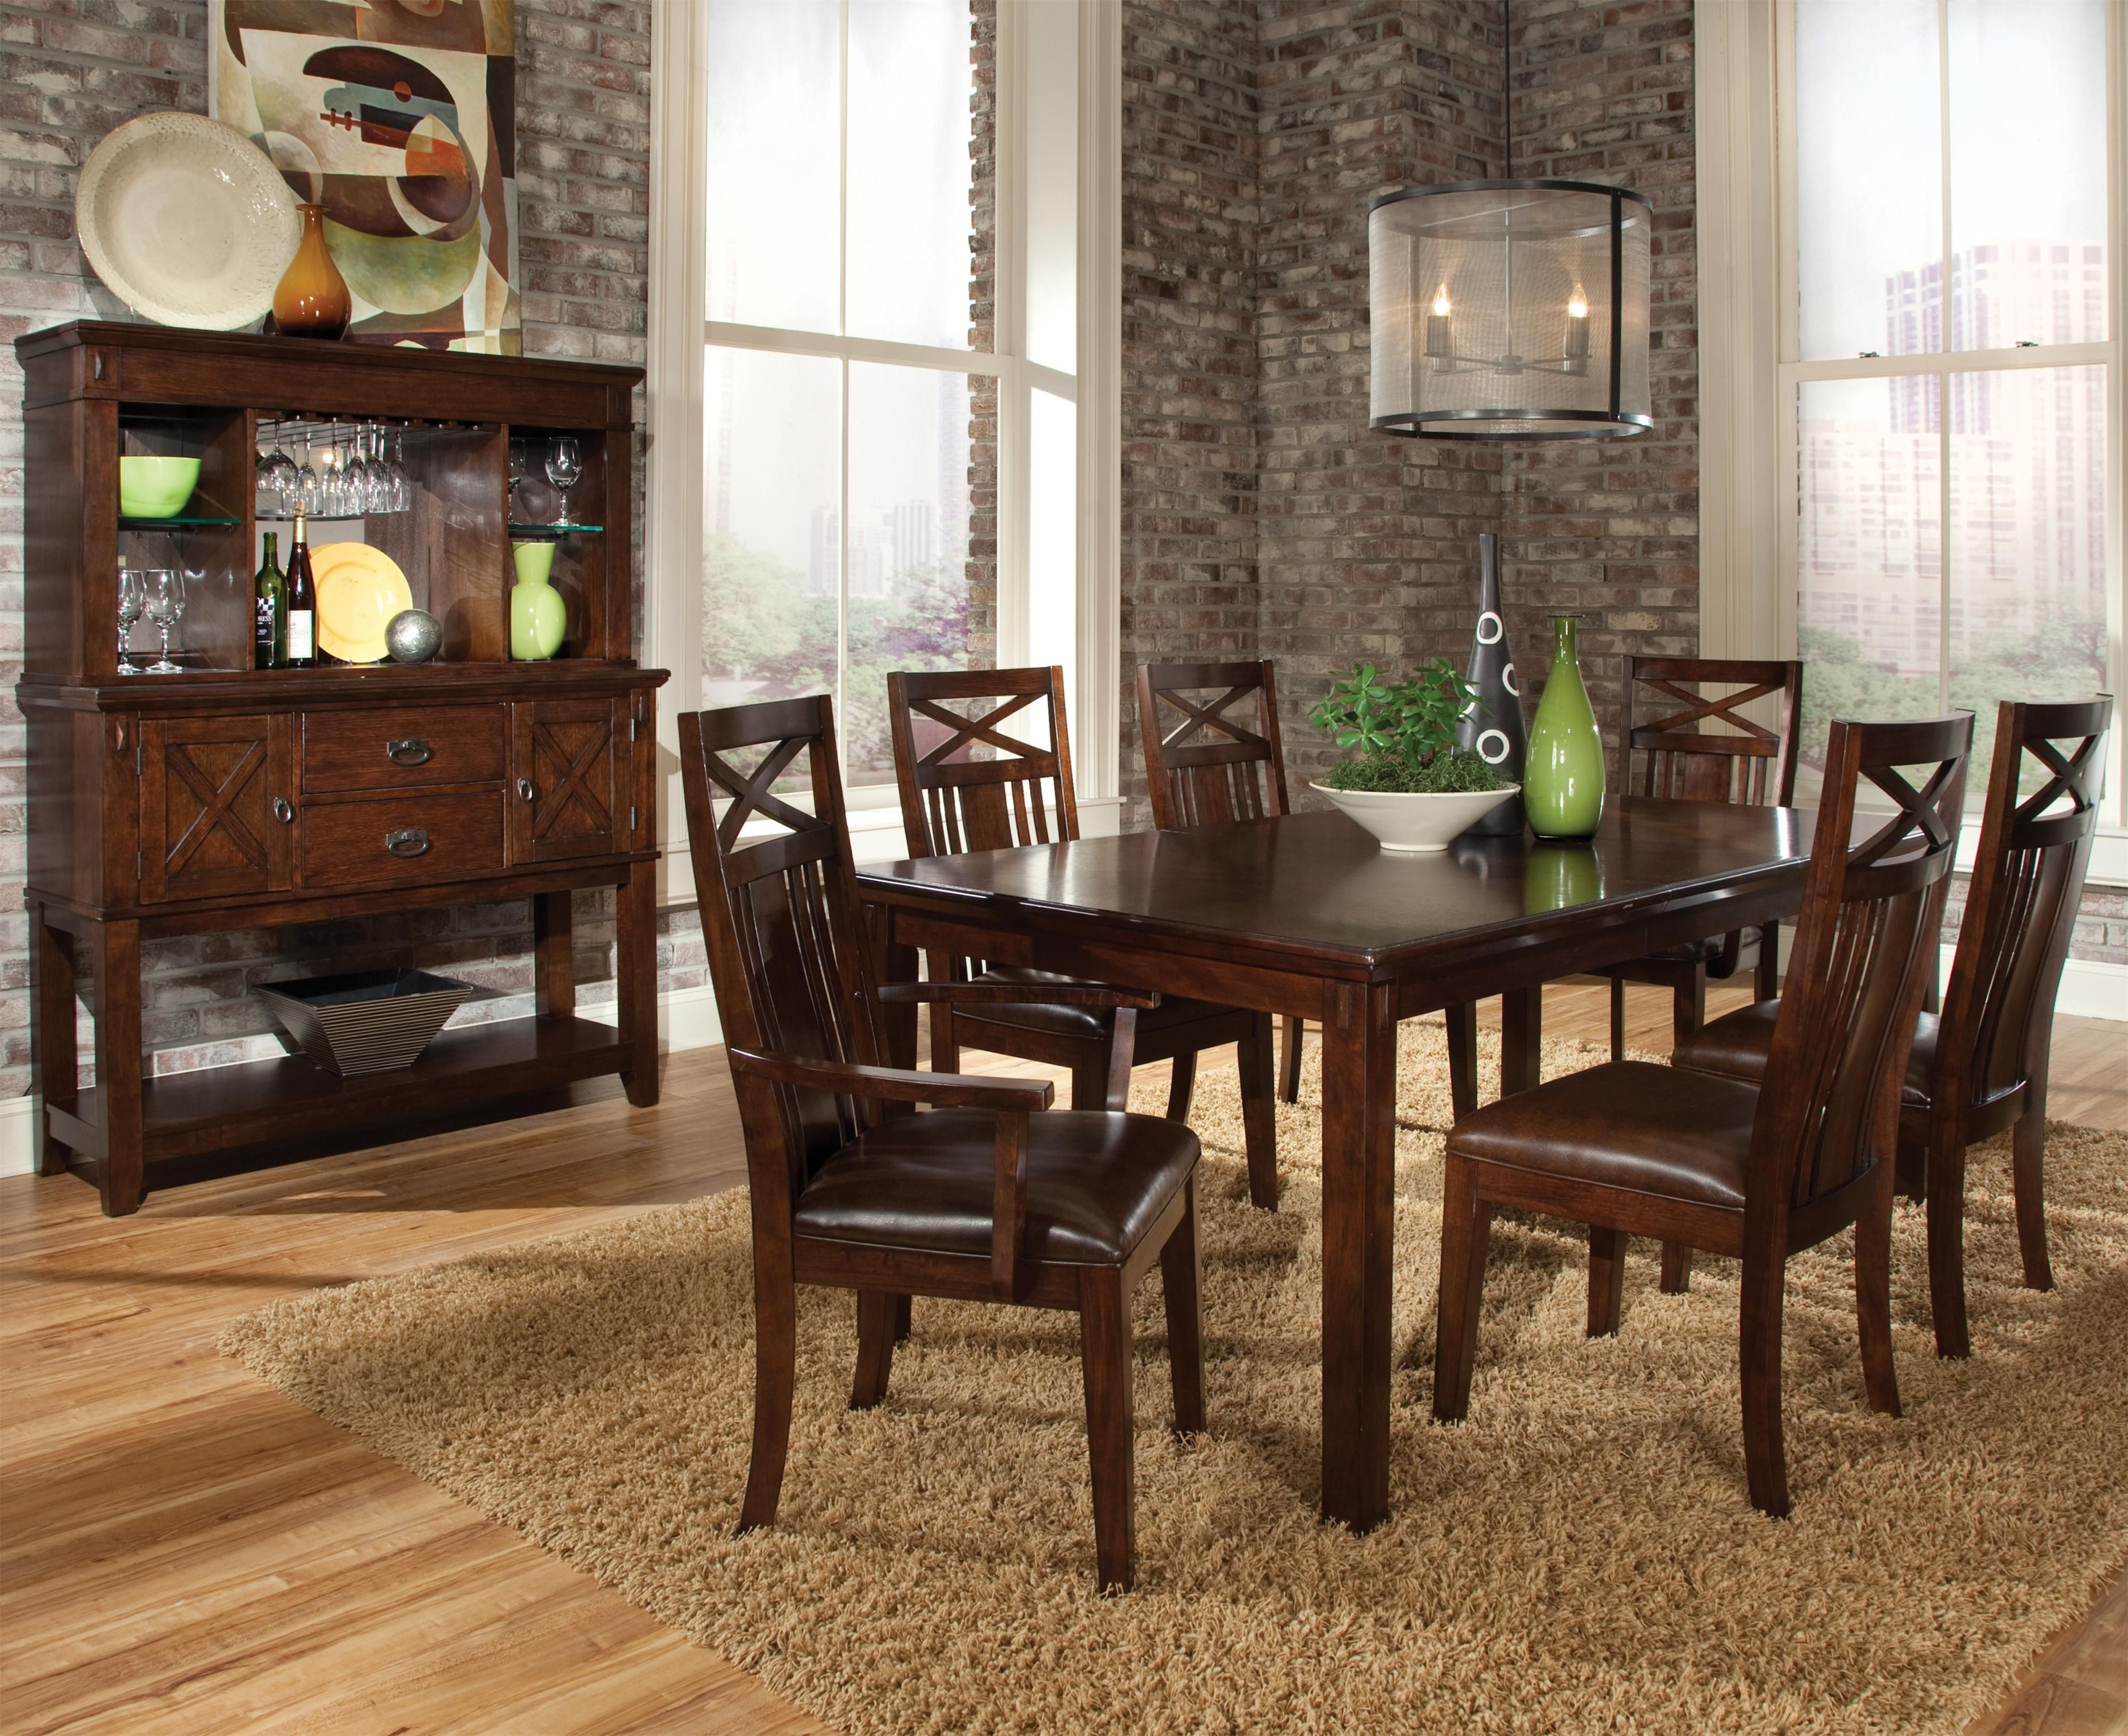 Best Dining Room Sets Orlando Pictures House Design Interior